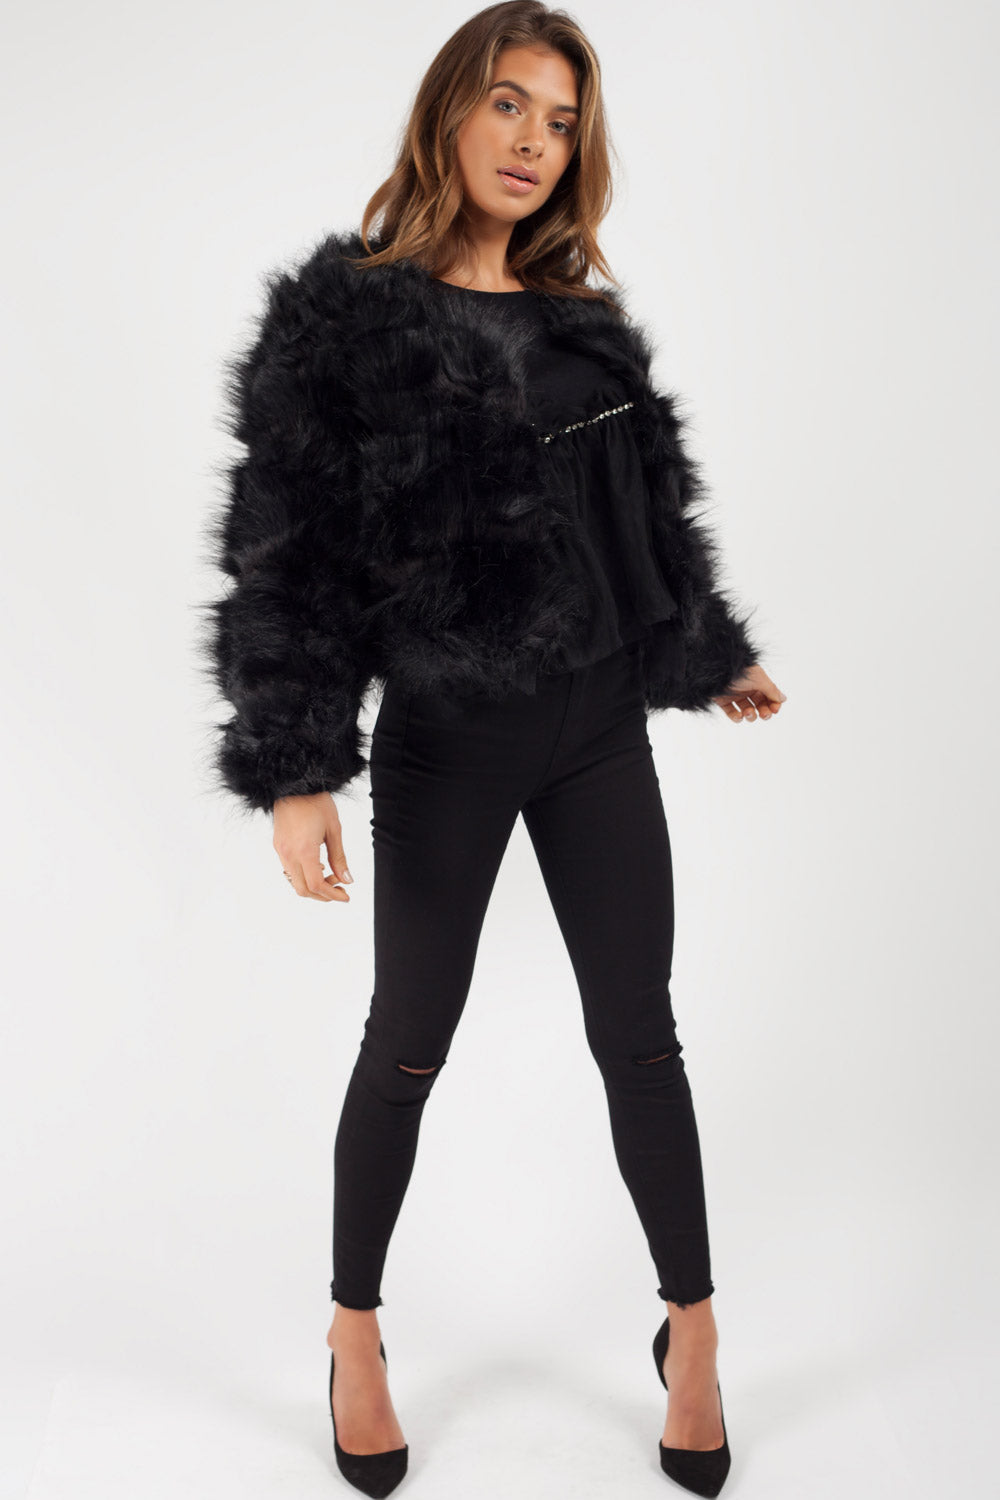 black faux fur coat uk